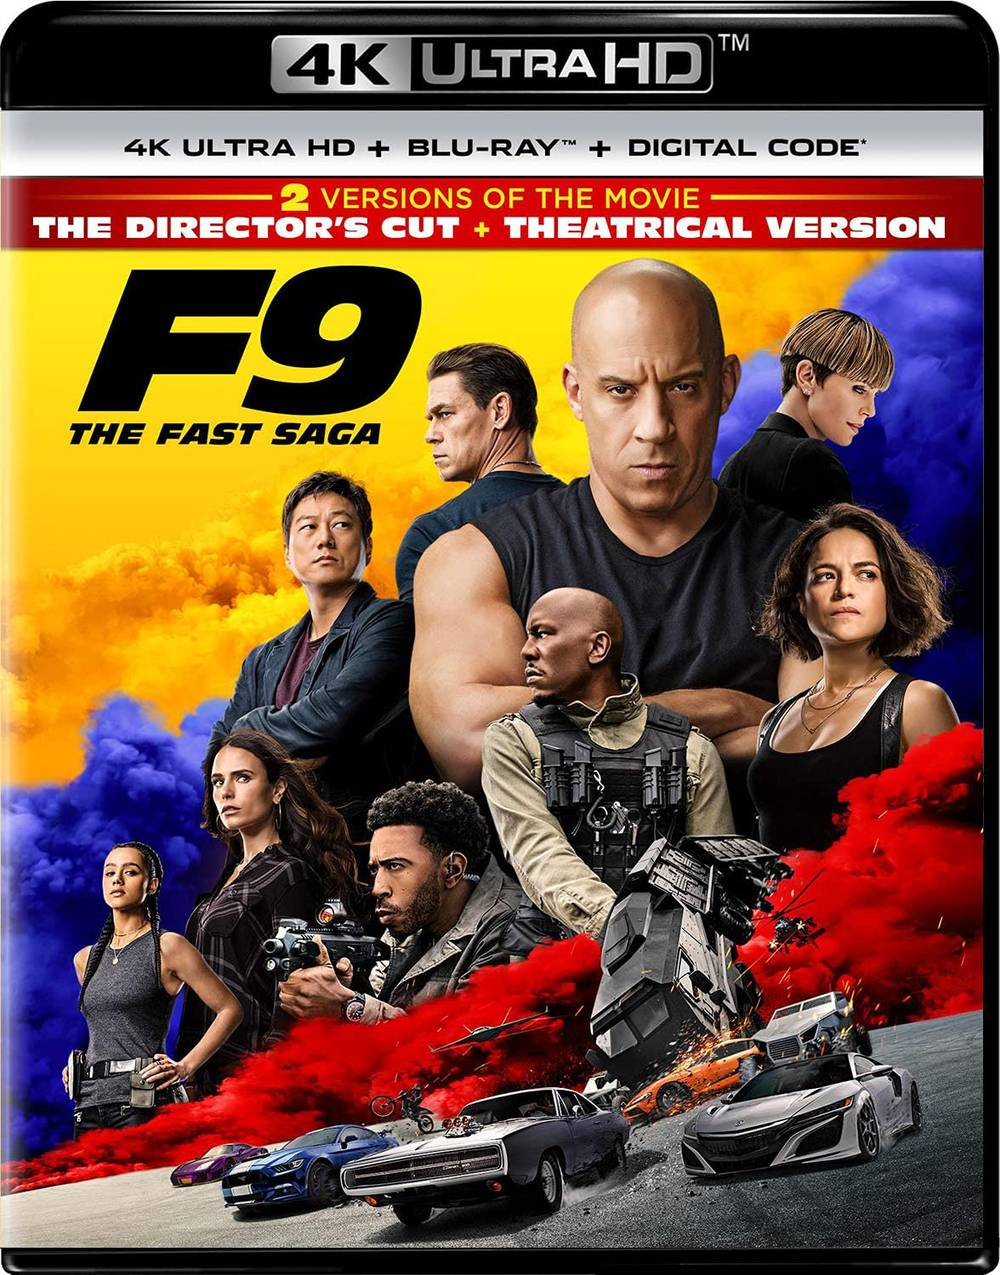 The Fast & The Furious [Movie] - F9: The Fast Saga – Director's Cut [4K]